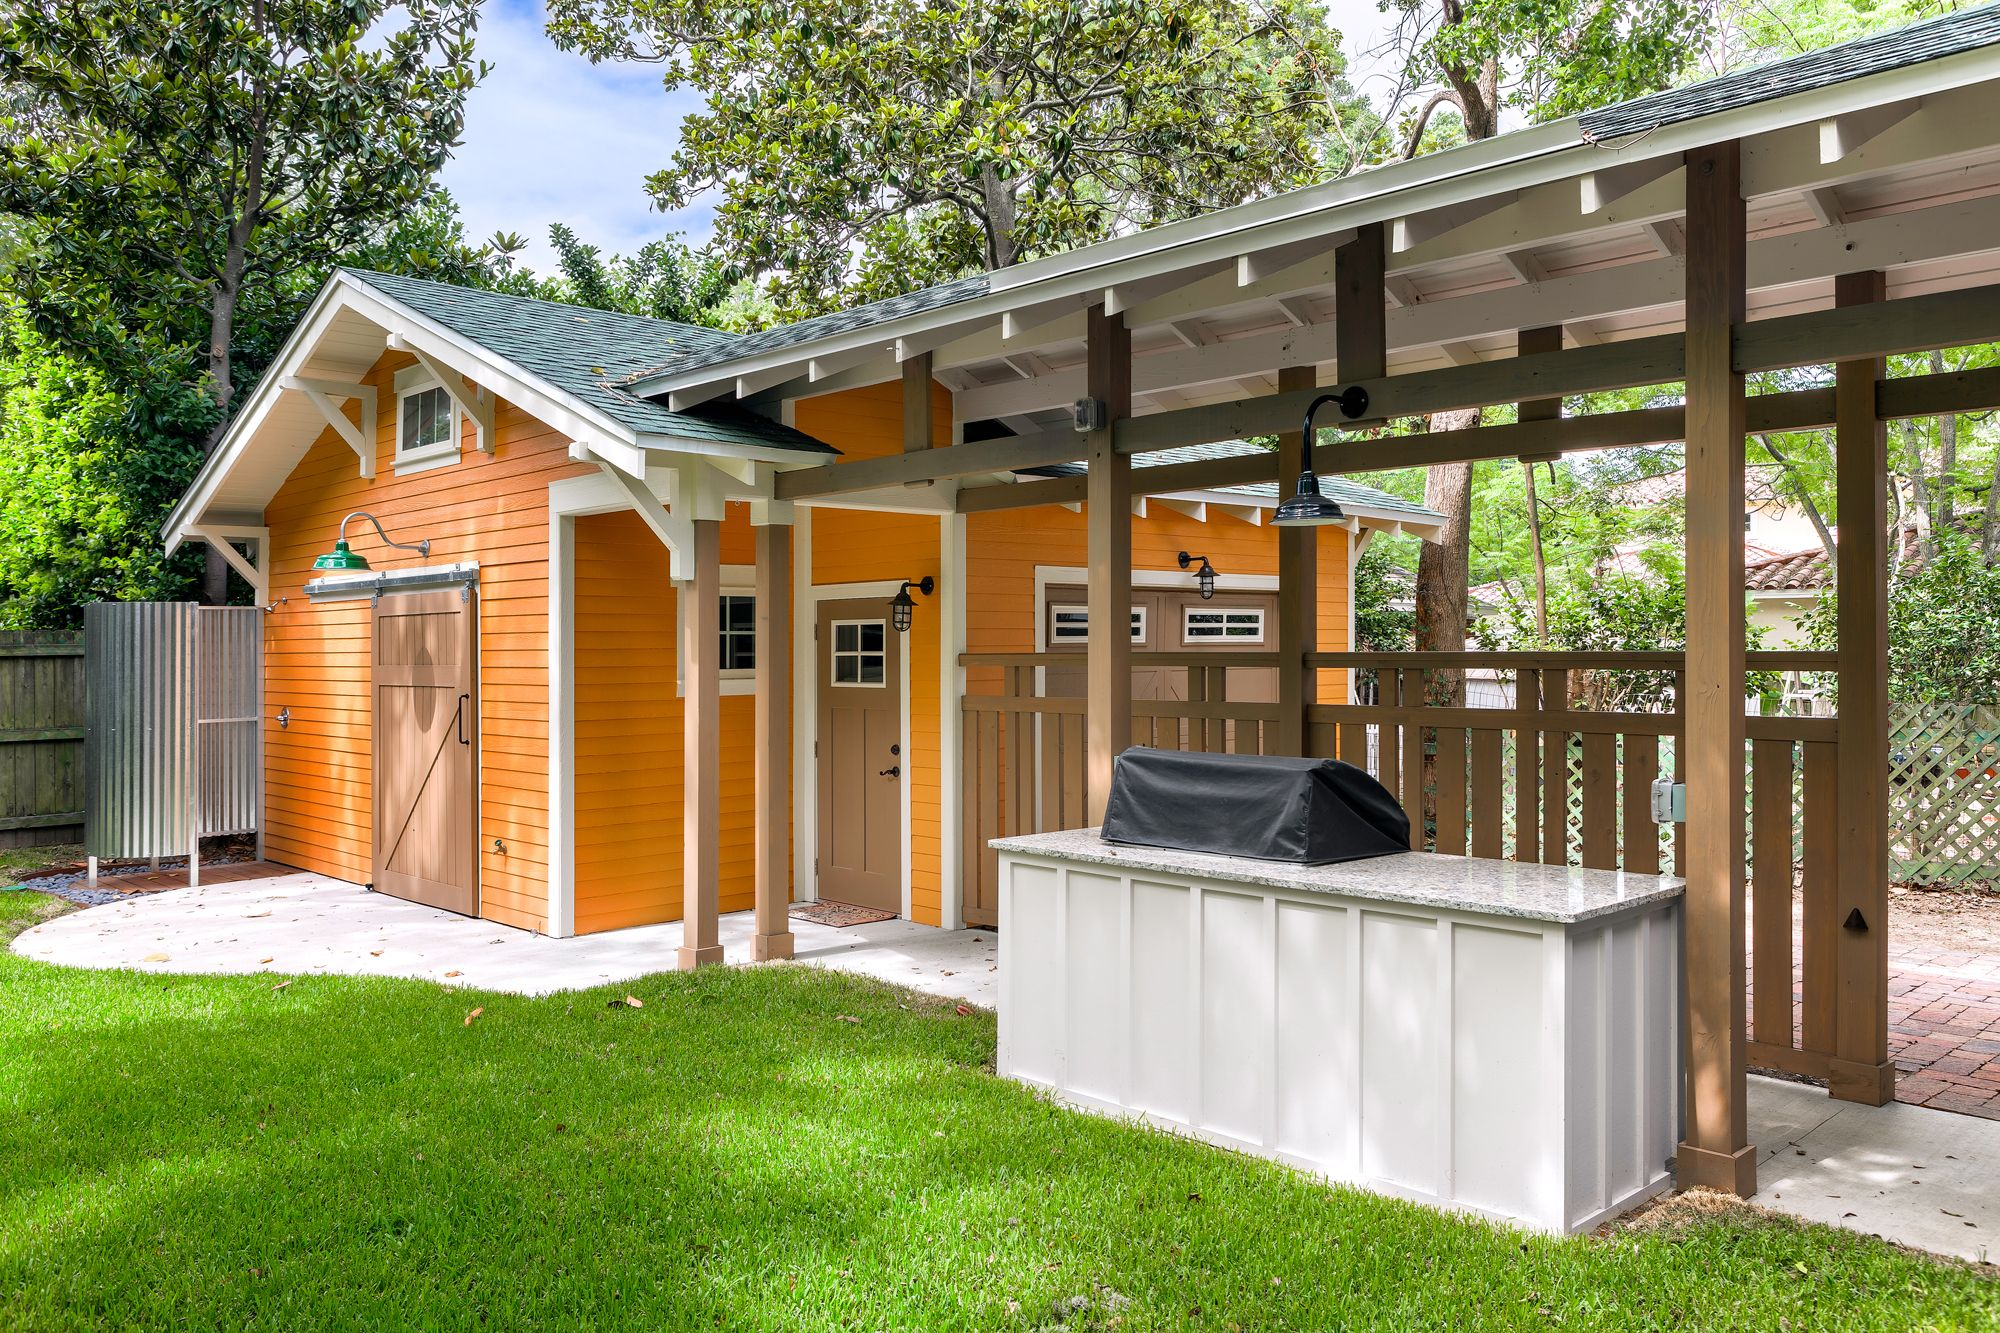 outdoor cooking space and detached garage with barn door and